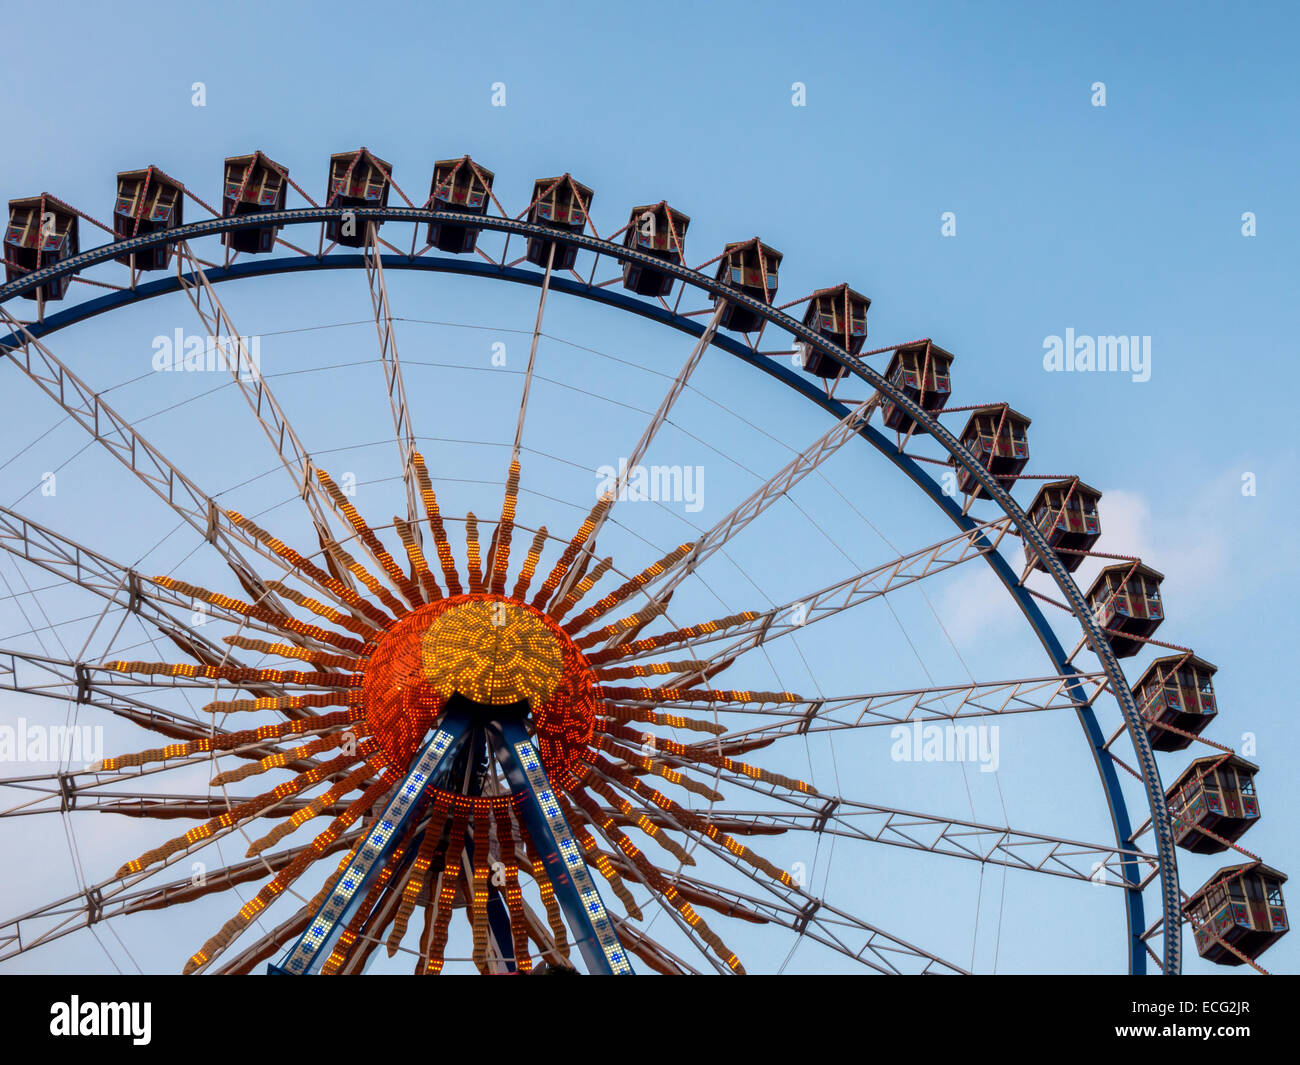 Old ferris wheel with traditional cabins at the Berlin Christmas market, Berliner Weihnachtszeit, Alexanderplatz - Stock Image